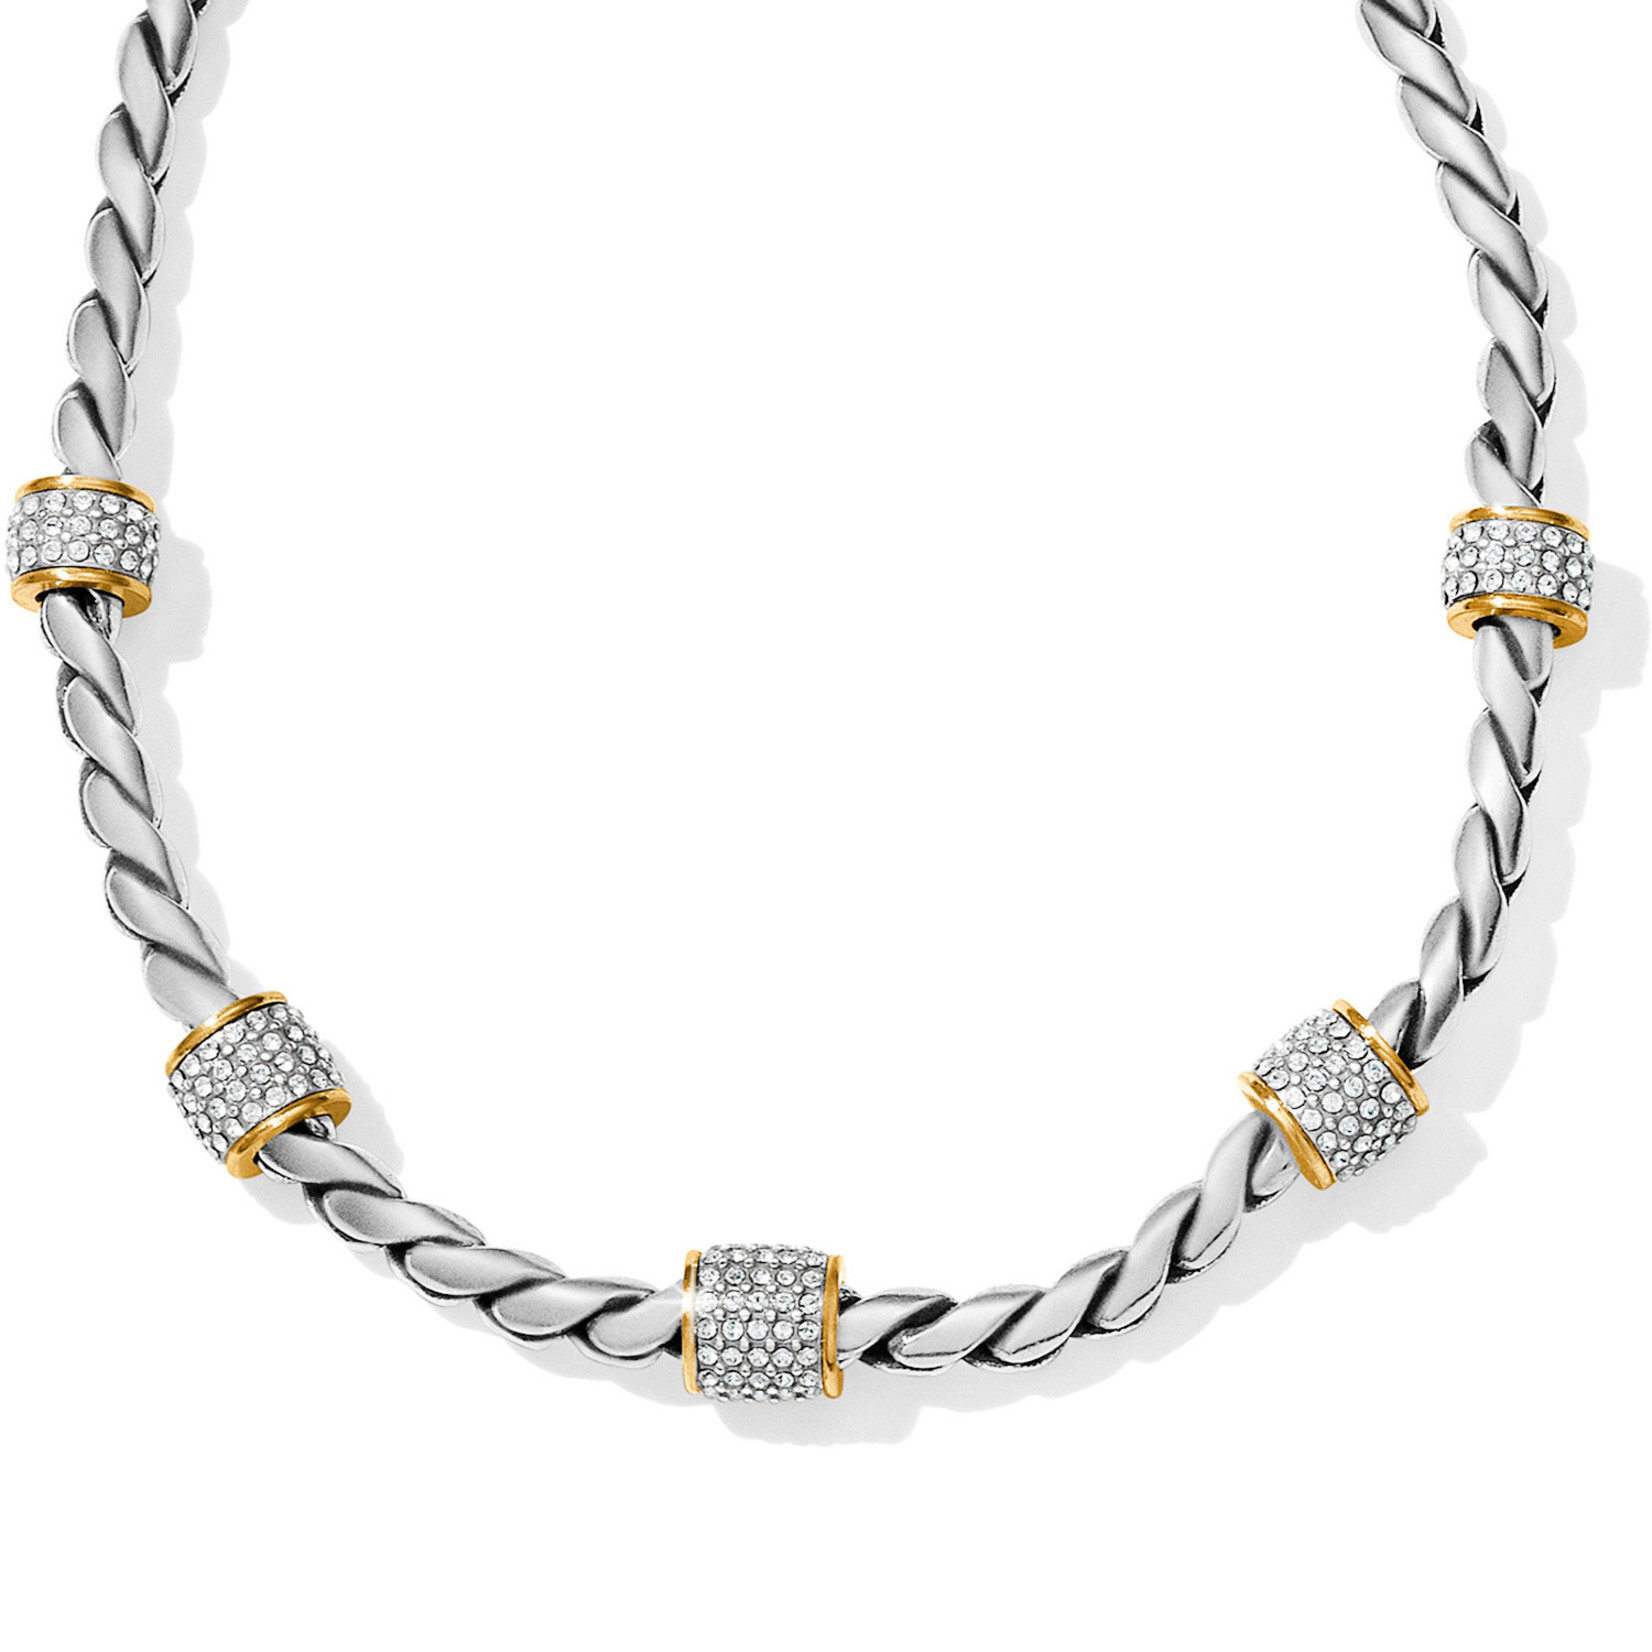 Brighton Meridian Necklace in Two Tone